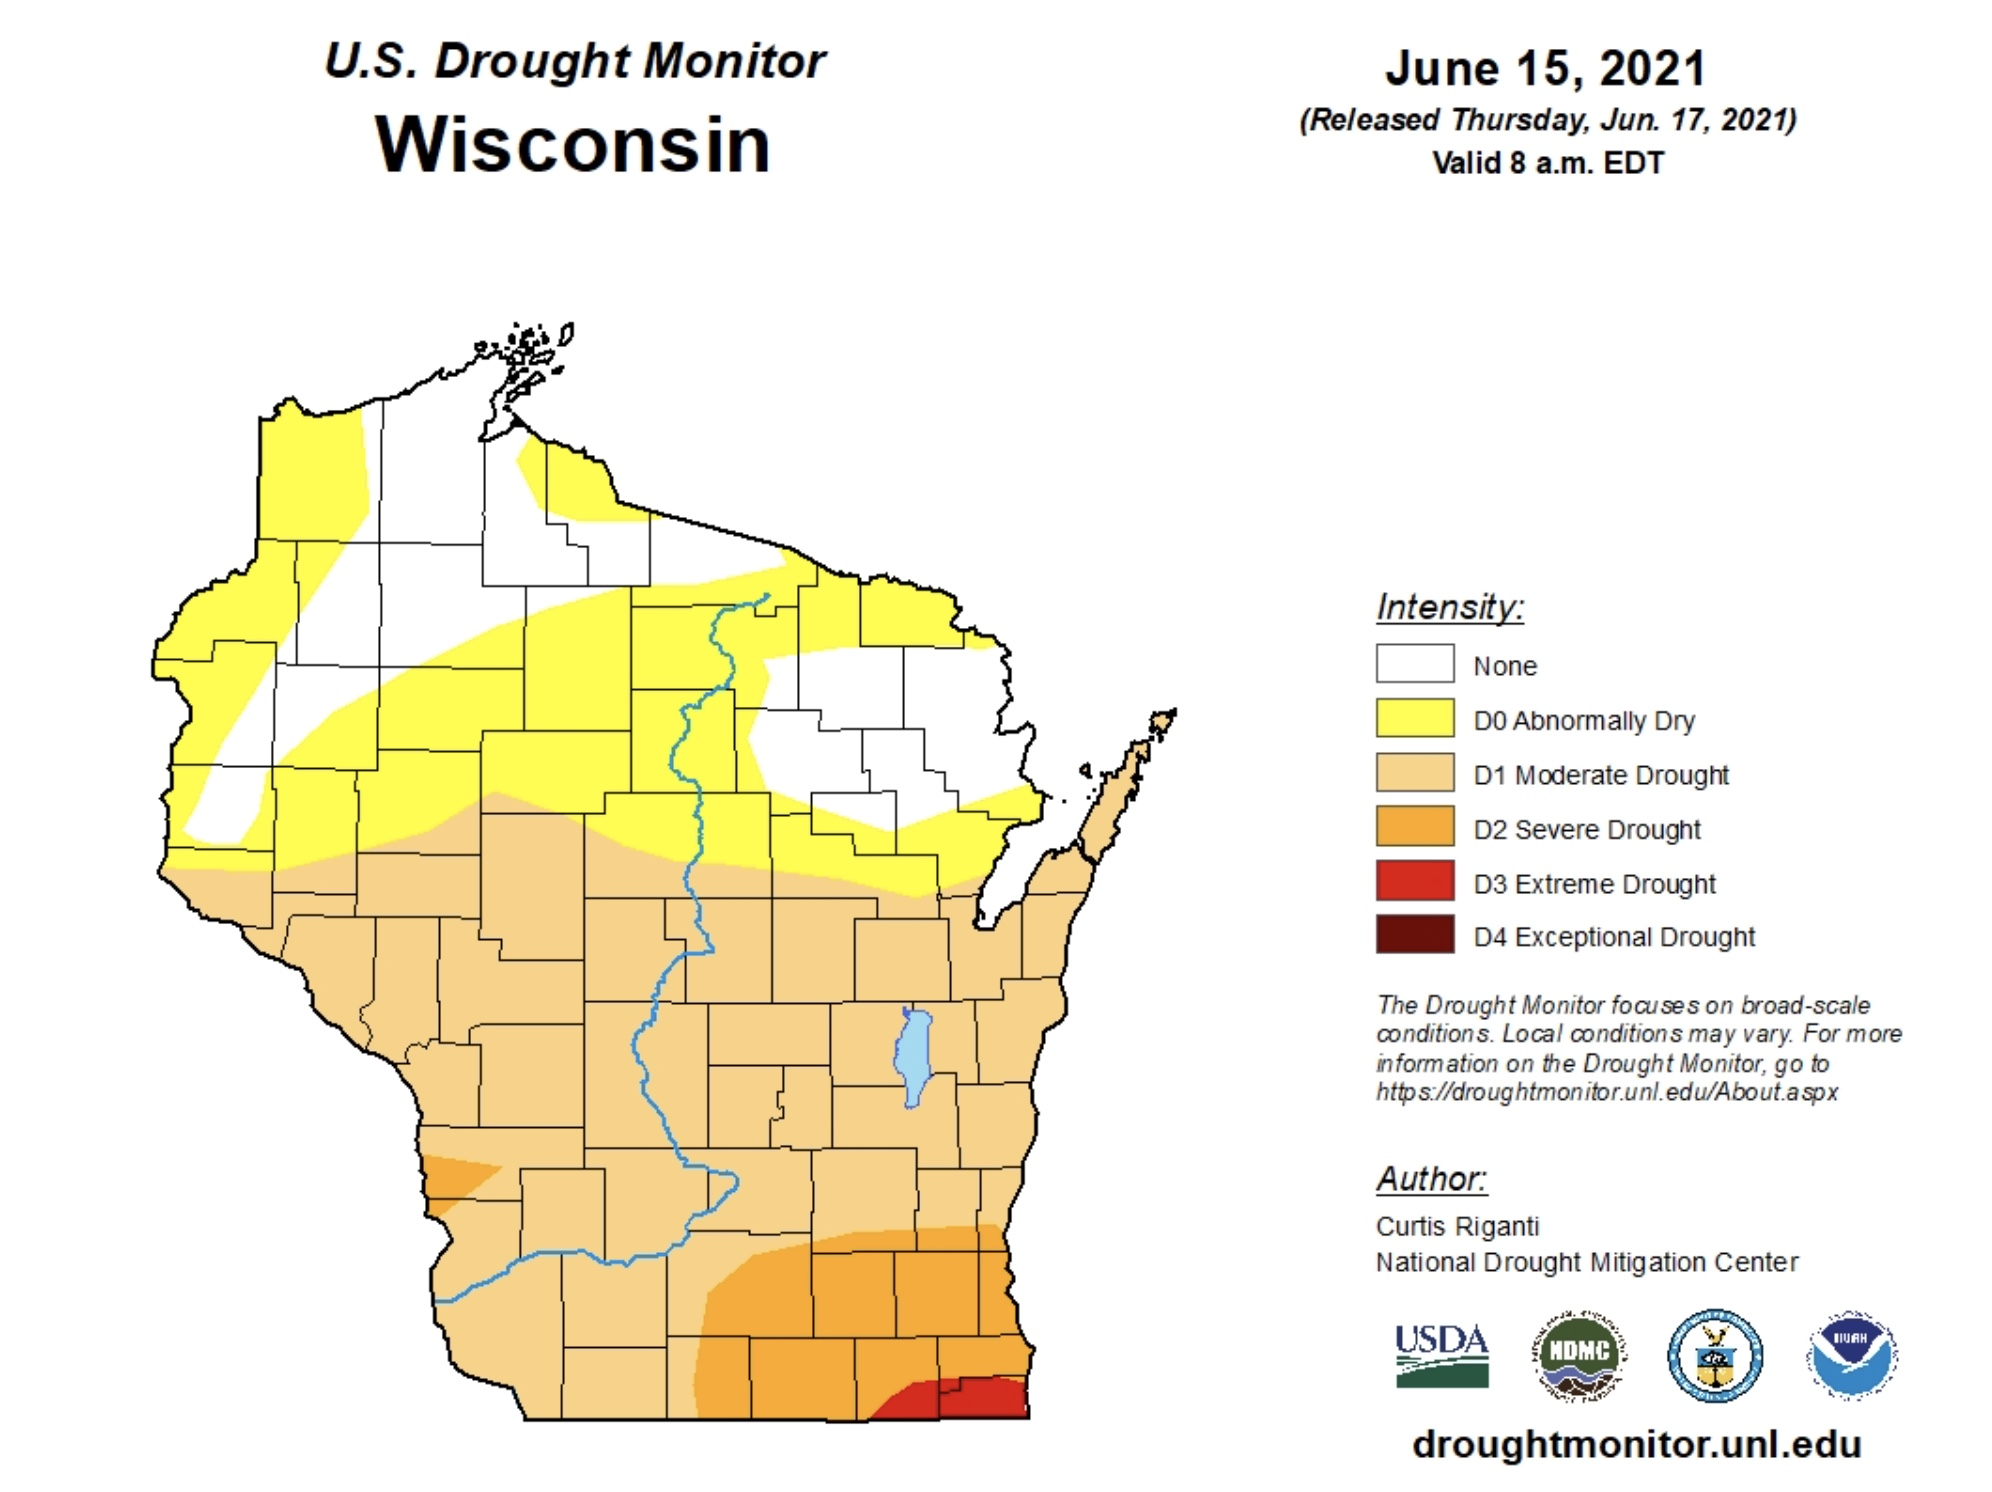 Chart shwoing drought conditions in Wisconsin in June of 2021.